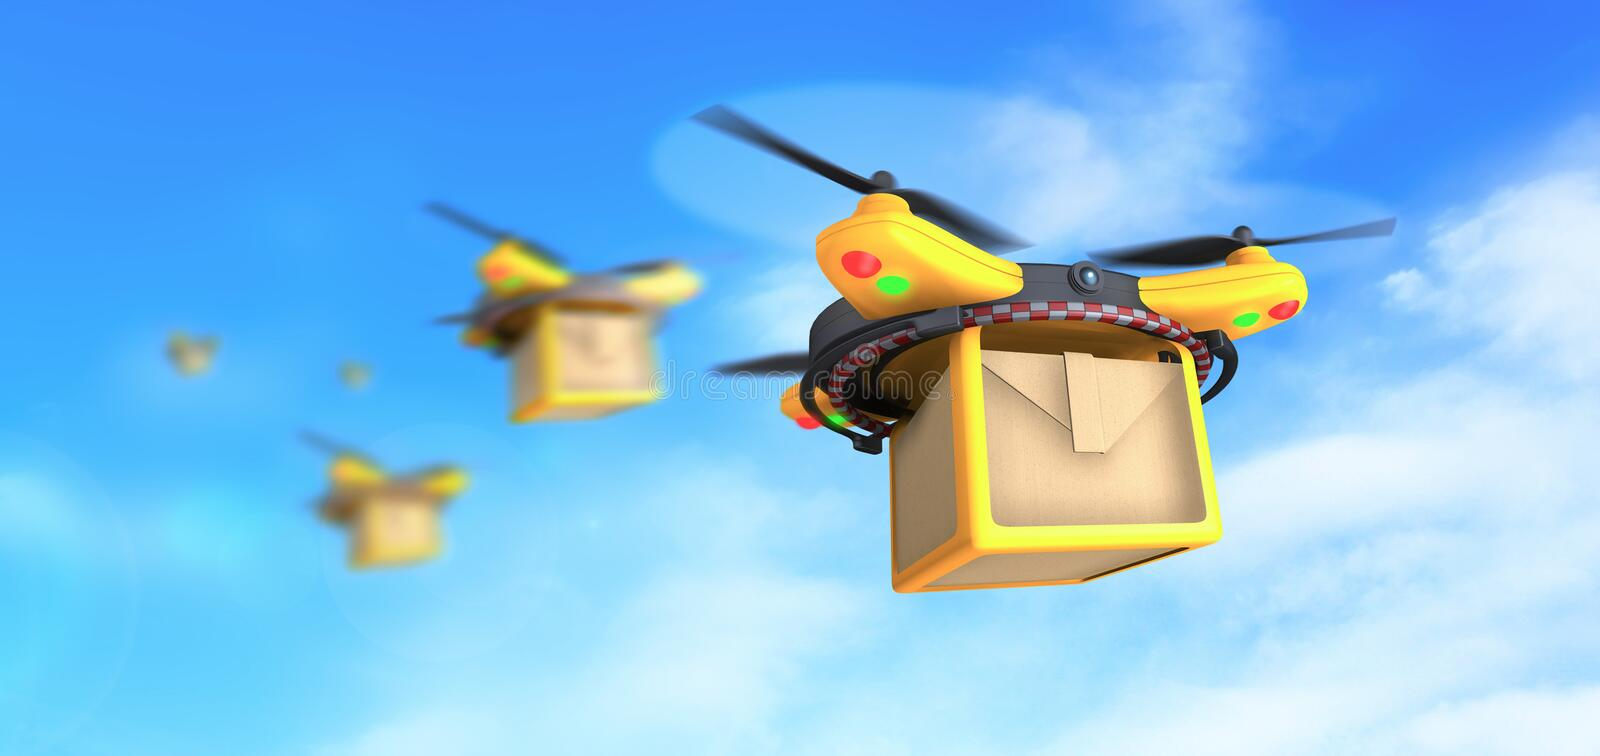 Drones deliver packages. Concept 3d design illustration, hd images. Illustration of yellow quadcopter drones deliver  box packages to customers vector illustration